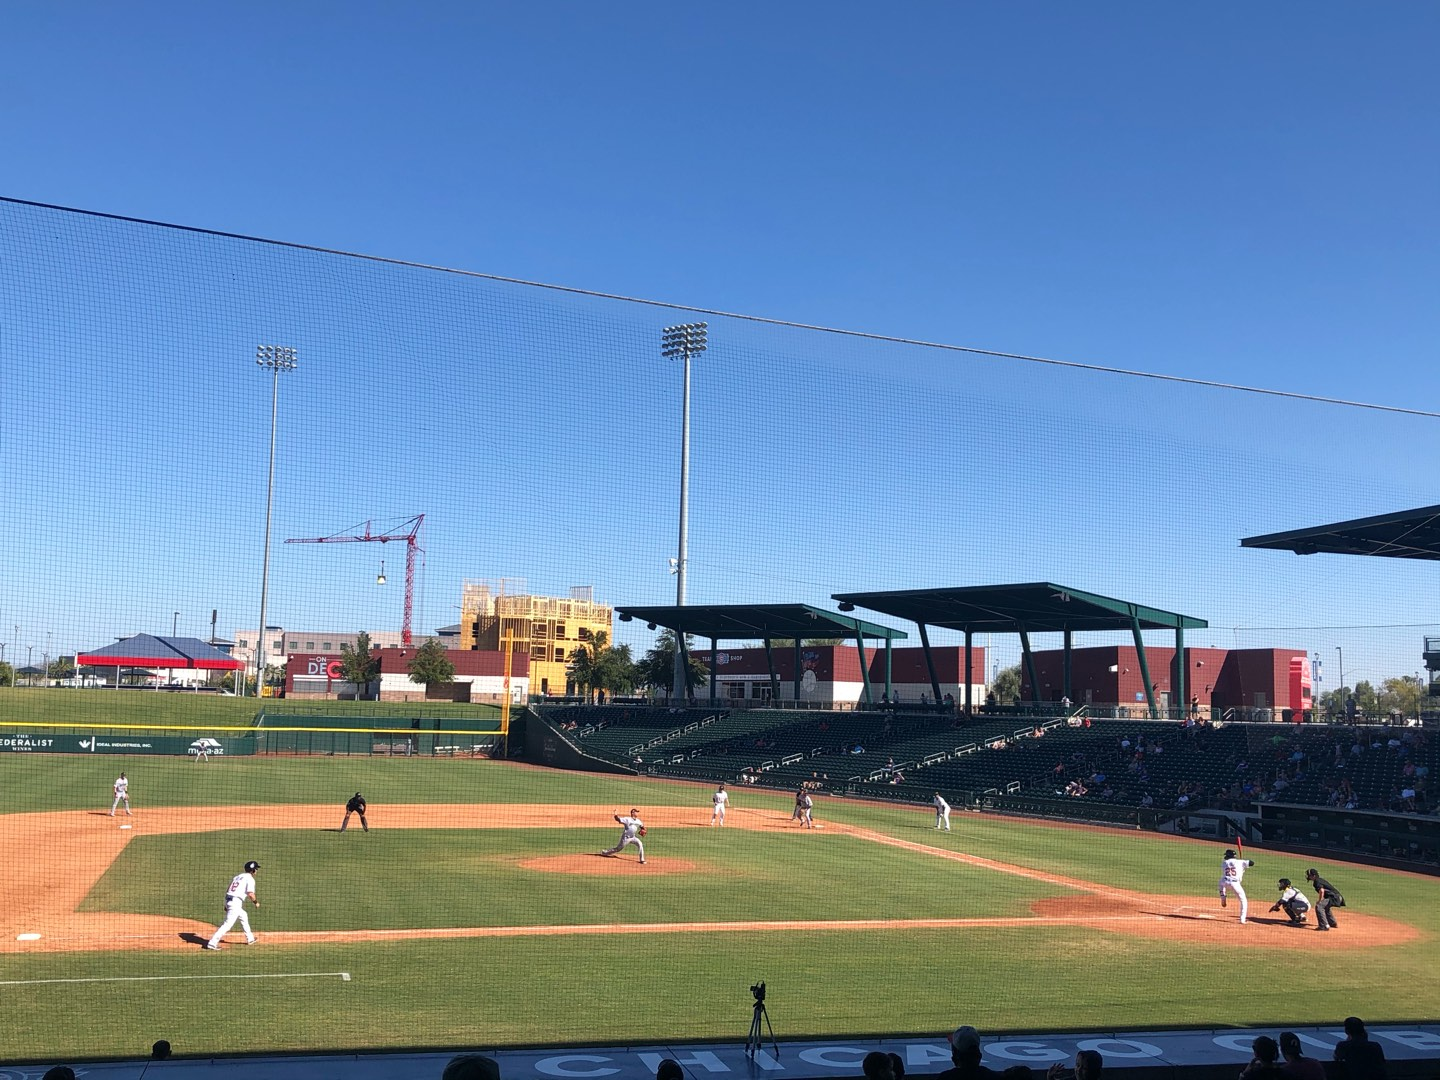 Sloan Park Section 107 Row 21 Seat 22